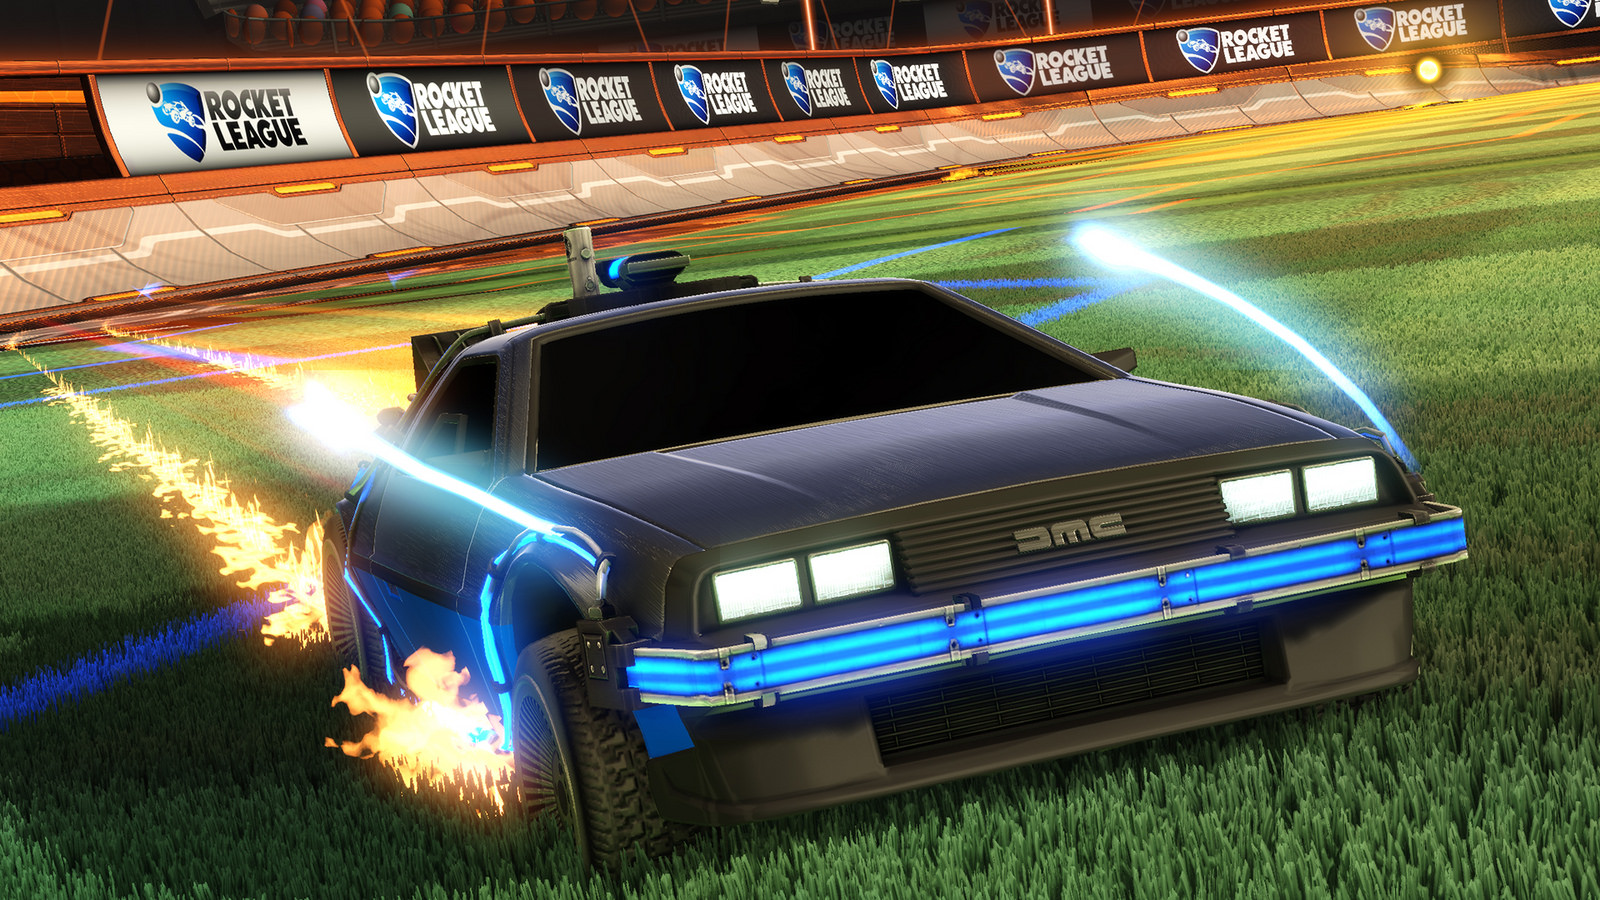 RocketLeague-DeLorean